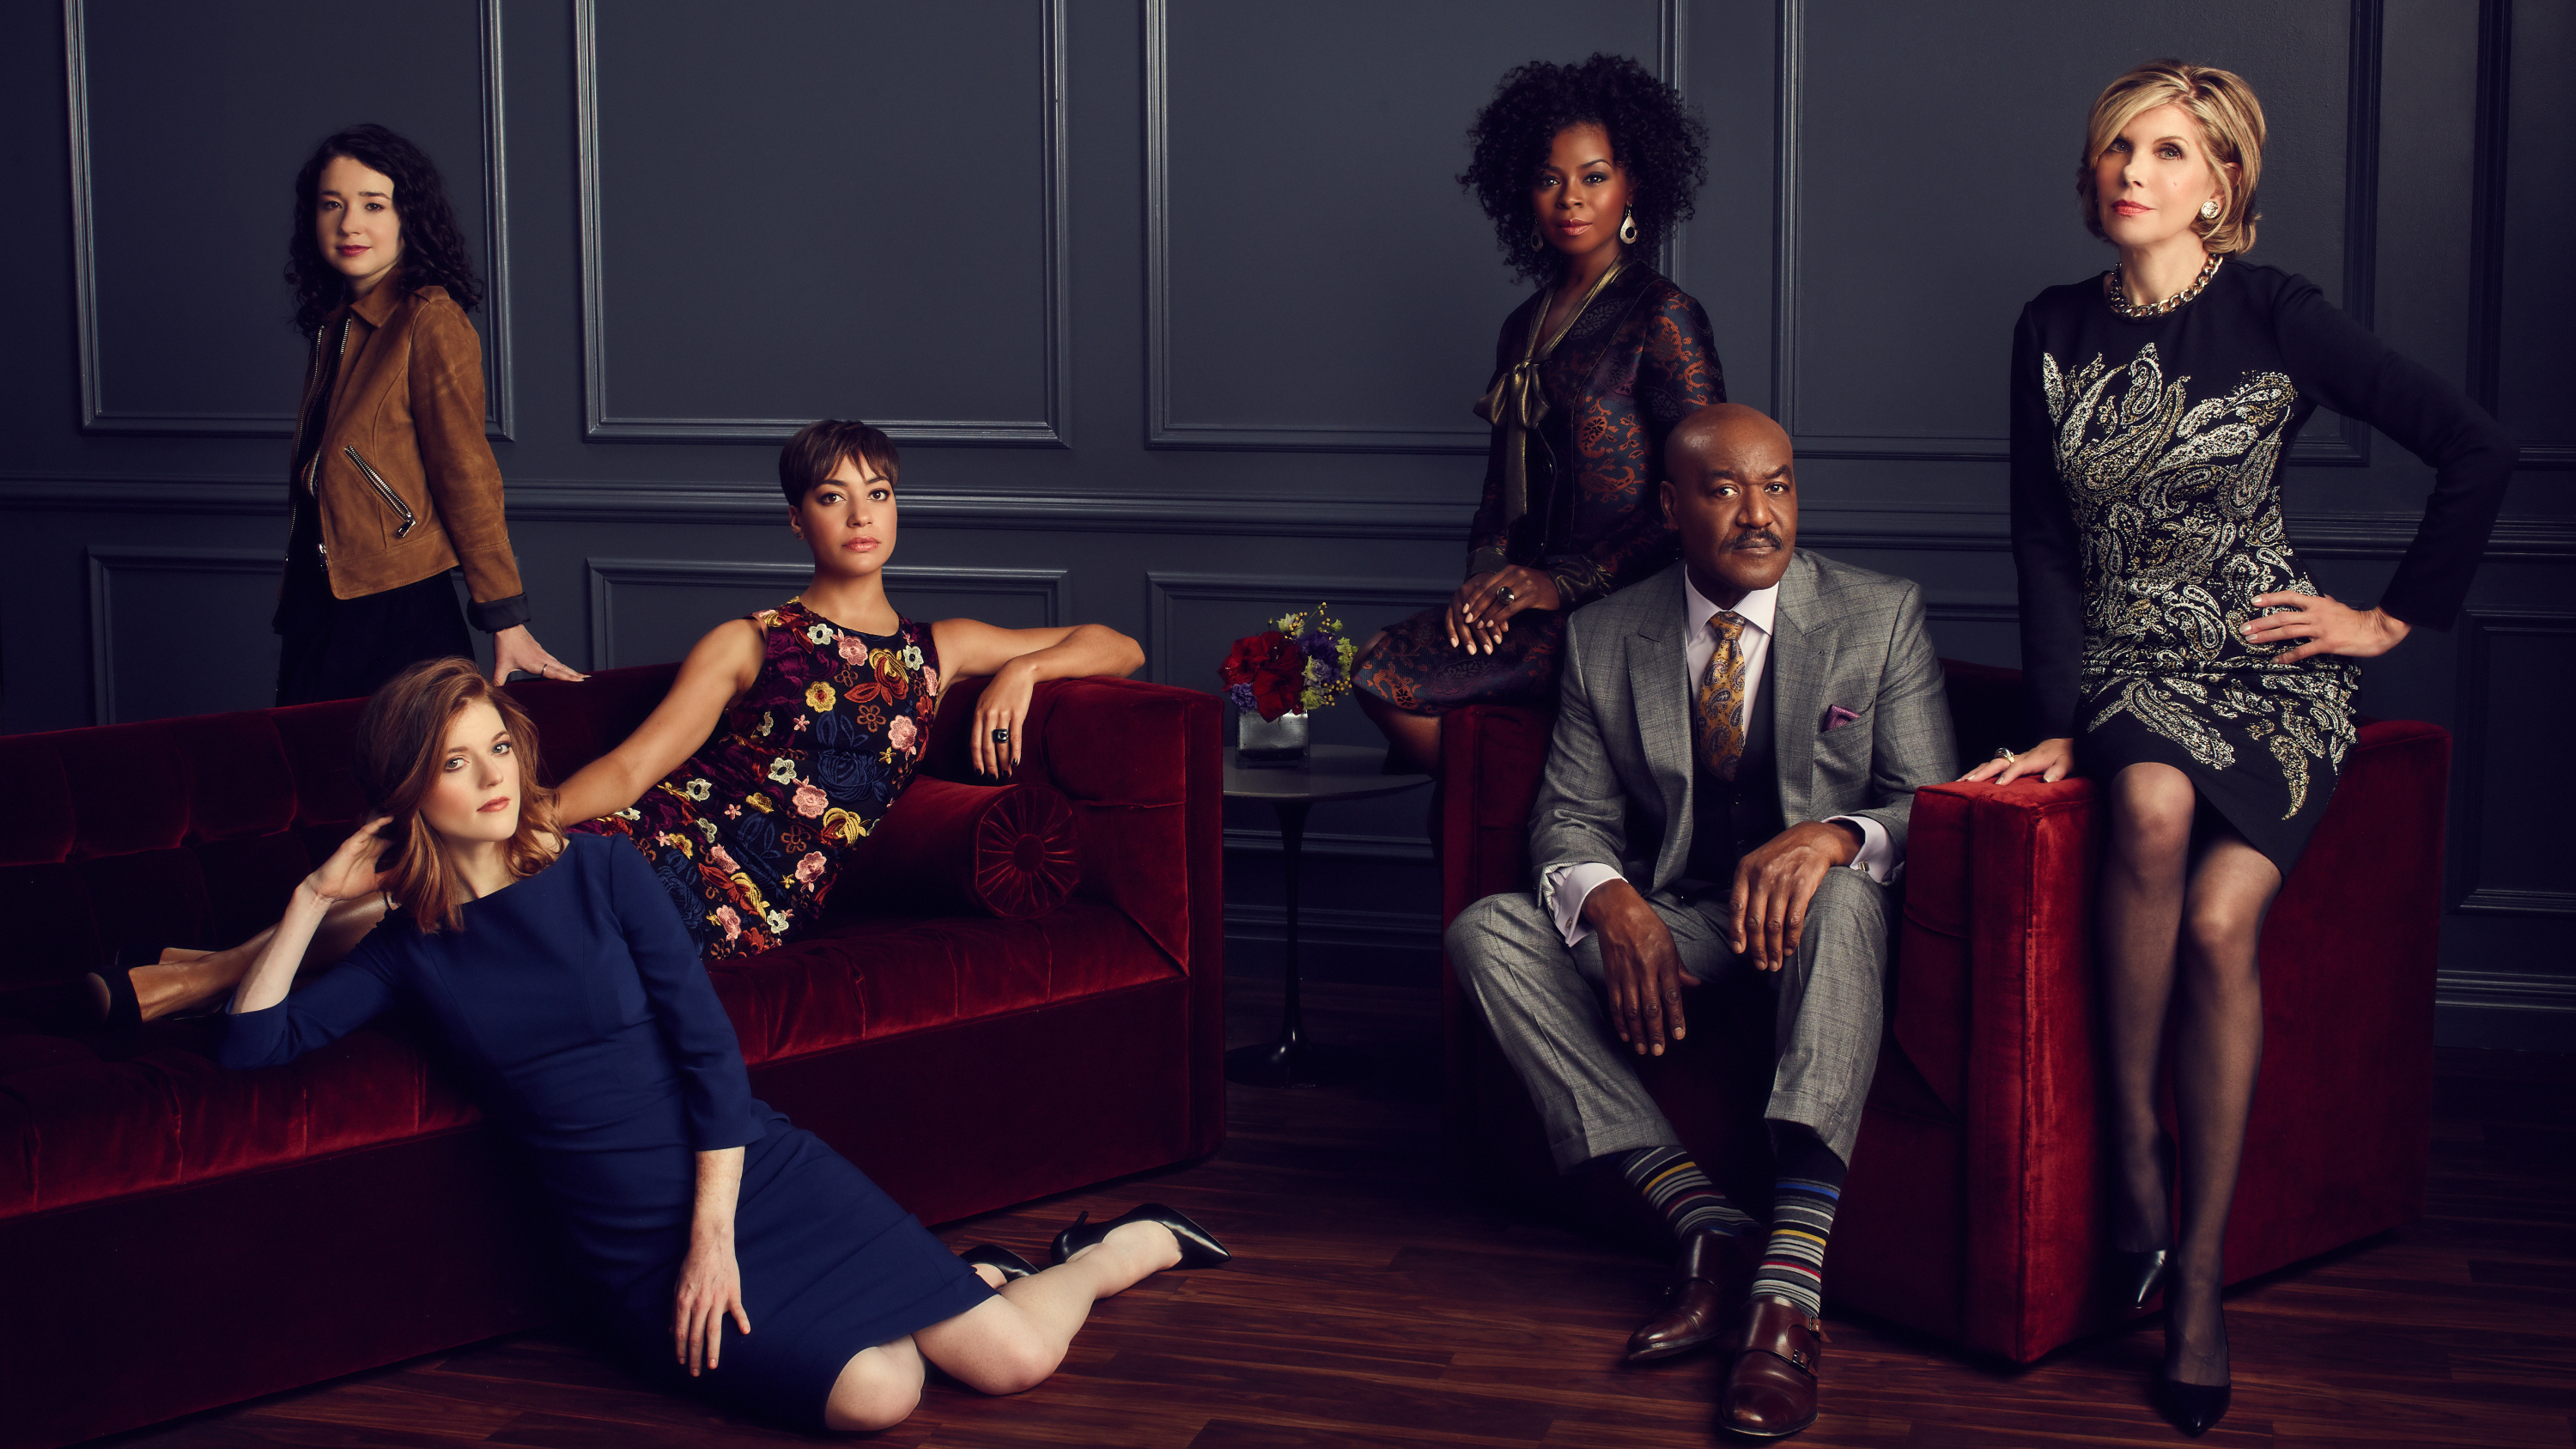 Meet The Cast Of The Good Fight The Good Fight Photos Cbs Com Erica tazel.march 31, 1977 happy birthday. https www cbs com shows the good fight photos 1007100 meet the cast of the good fight